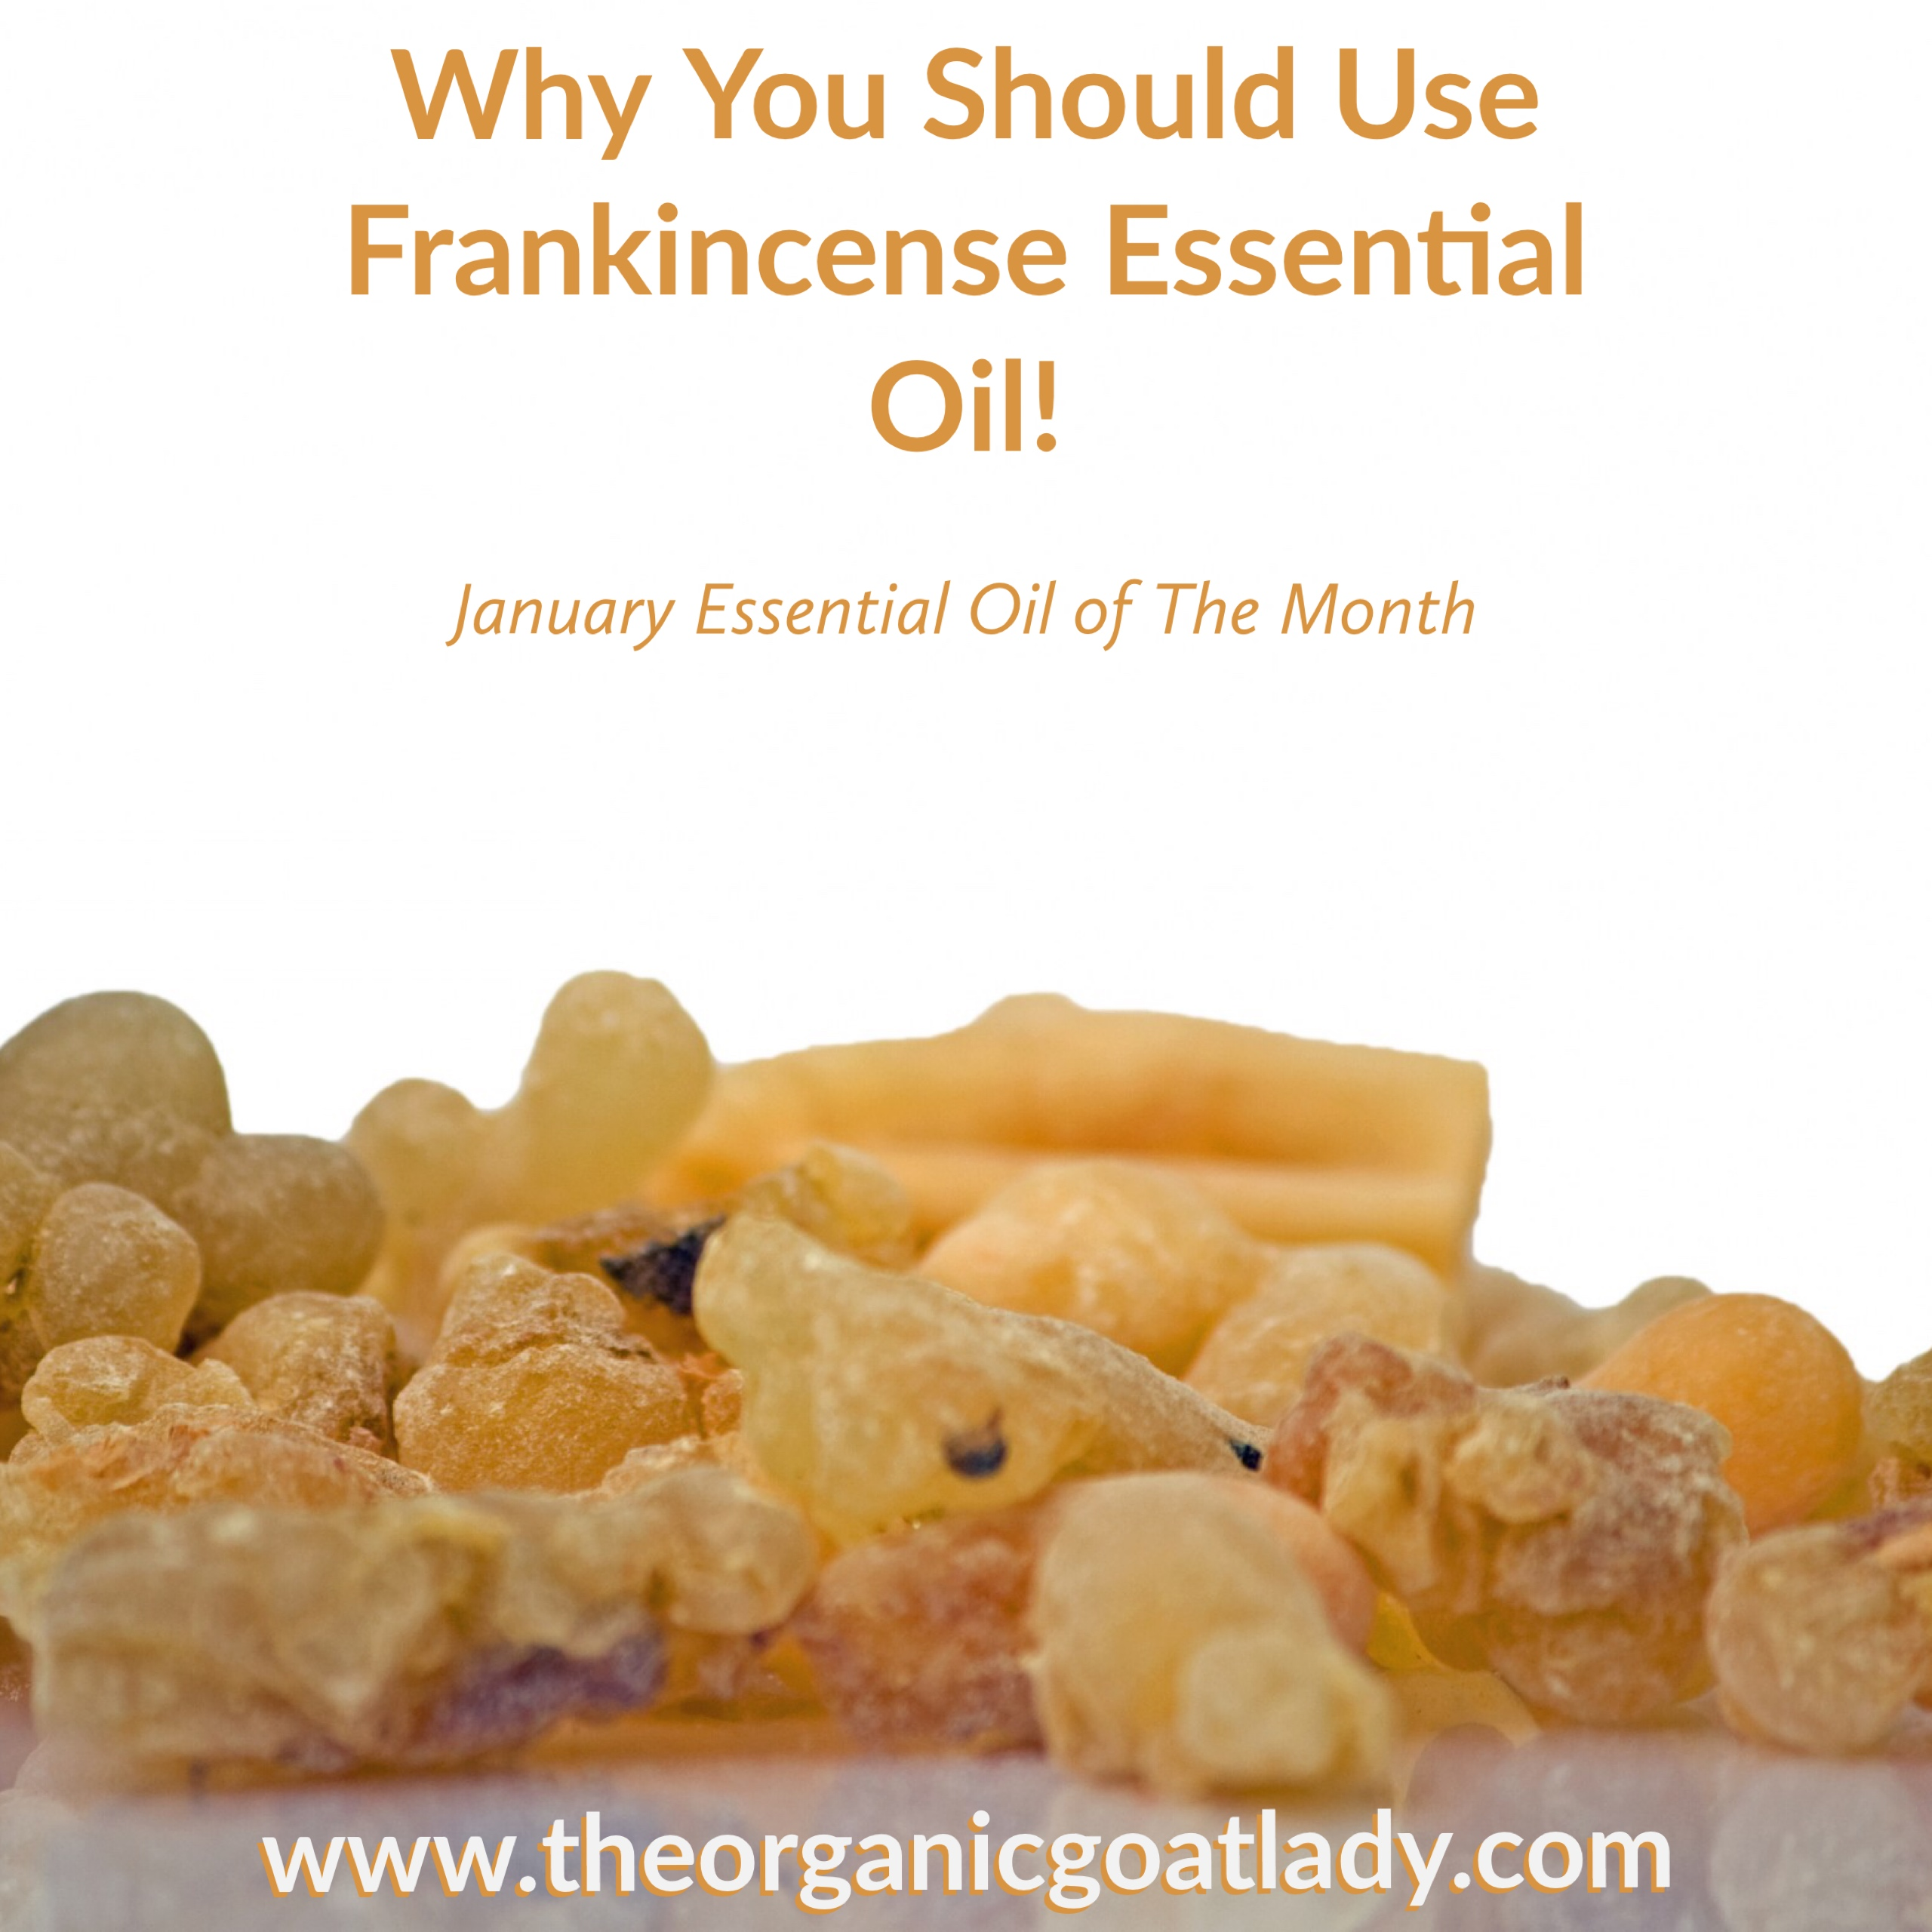 Why You Should Use Frankincense Essential Oil- January Oil of The Month